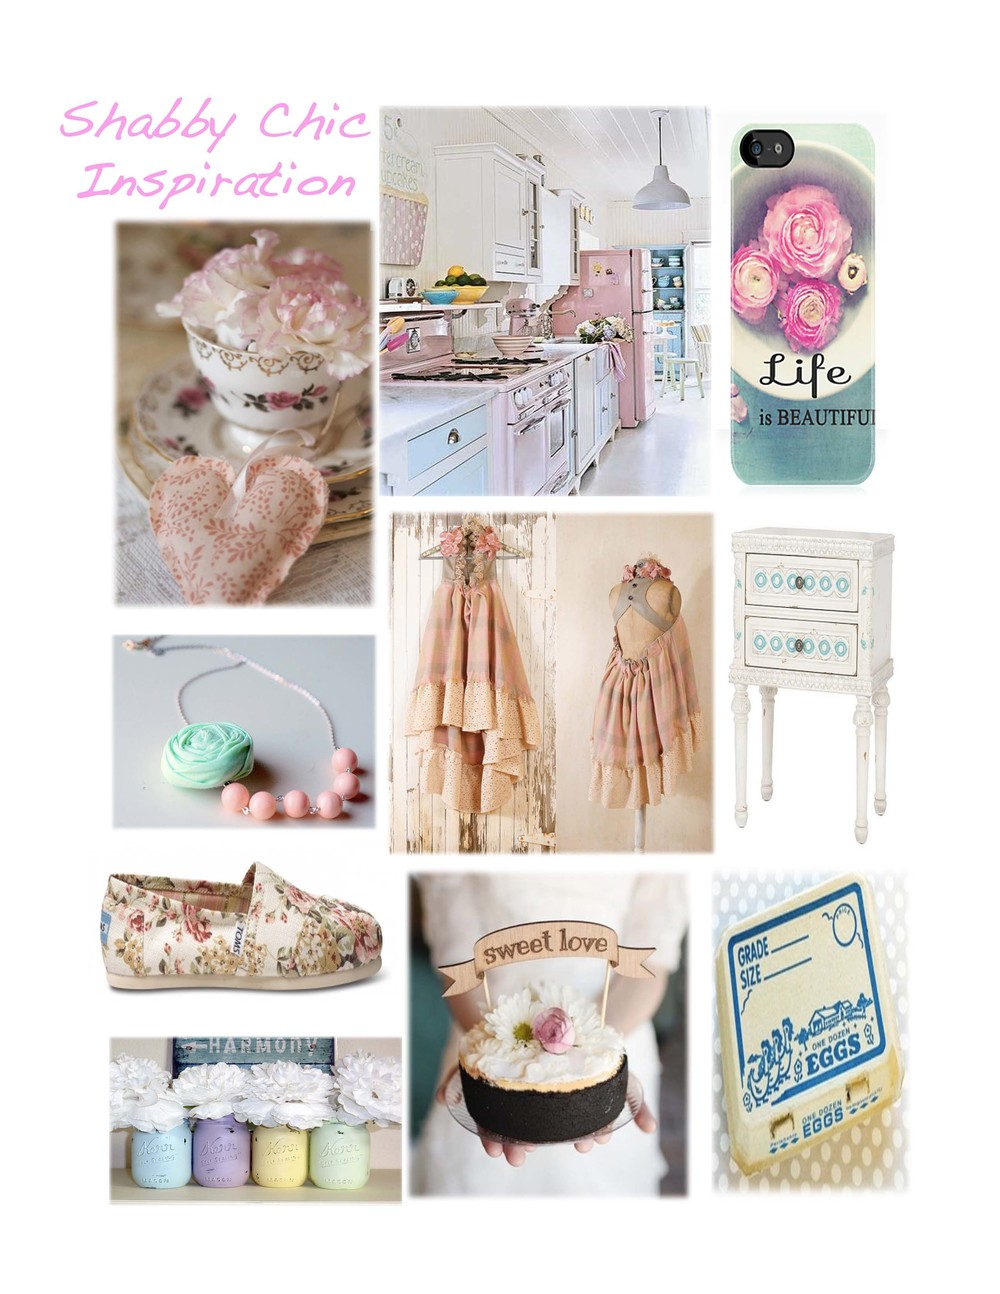 Teacup Florals by  Vintage and Cake   Kitchen Photography by  Deborah Whitlaw Llewllyn   IPhone Case by  Red Bubble   Alternative Wedding Dress by  My Noush   Shabby Chic Dresser by  QVC   Toms by  Toms   Mason Jars by  Country Living at Heart   Cake Topper by  Better Off Wed   Fresh Eggs Packaging by  Shop Sweet Lulu